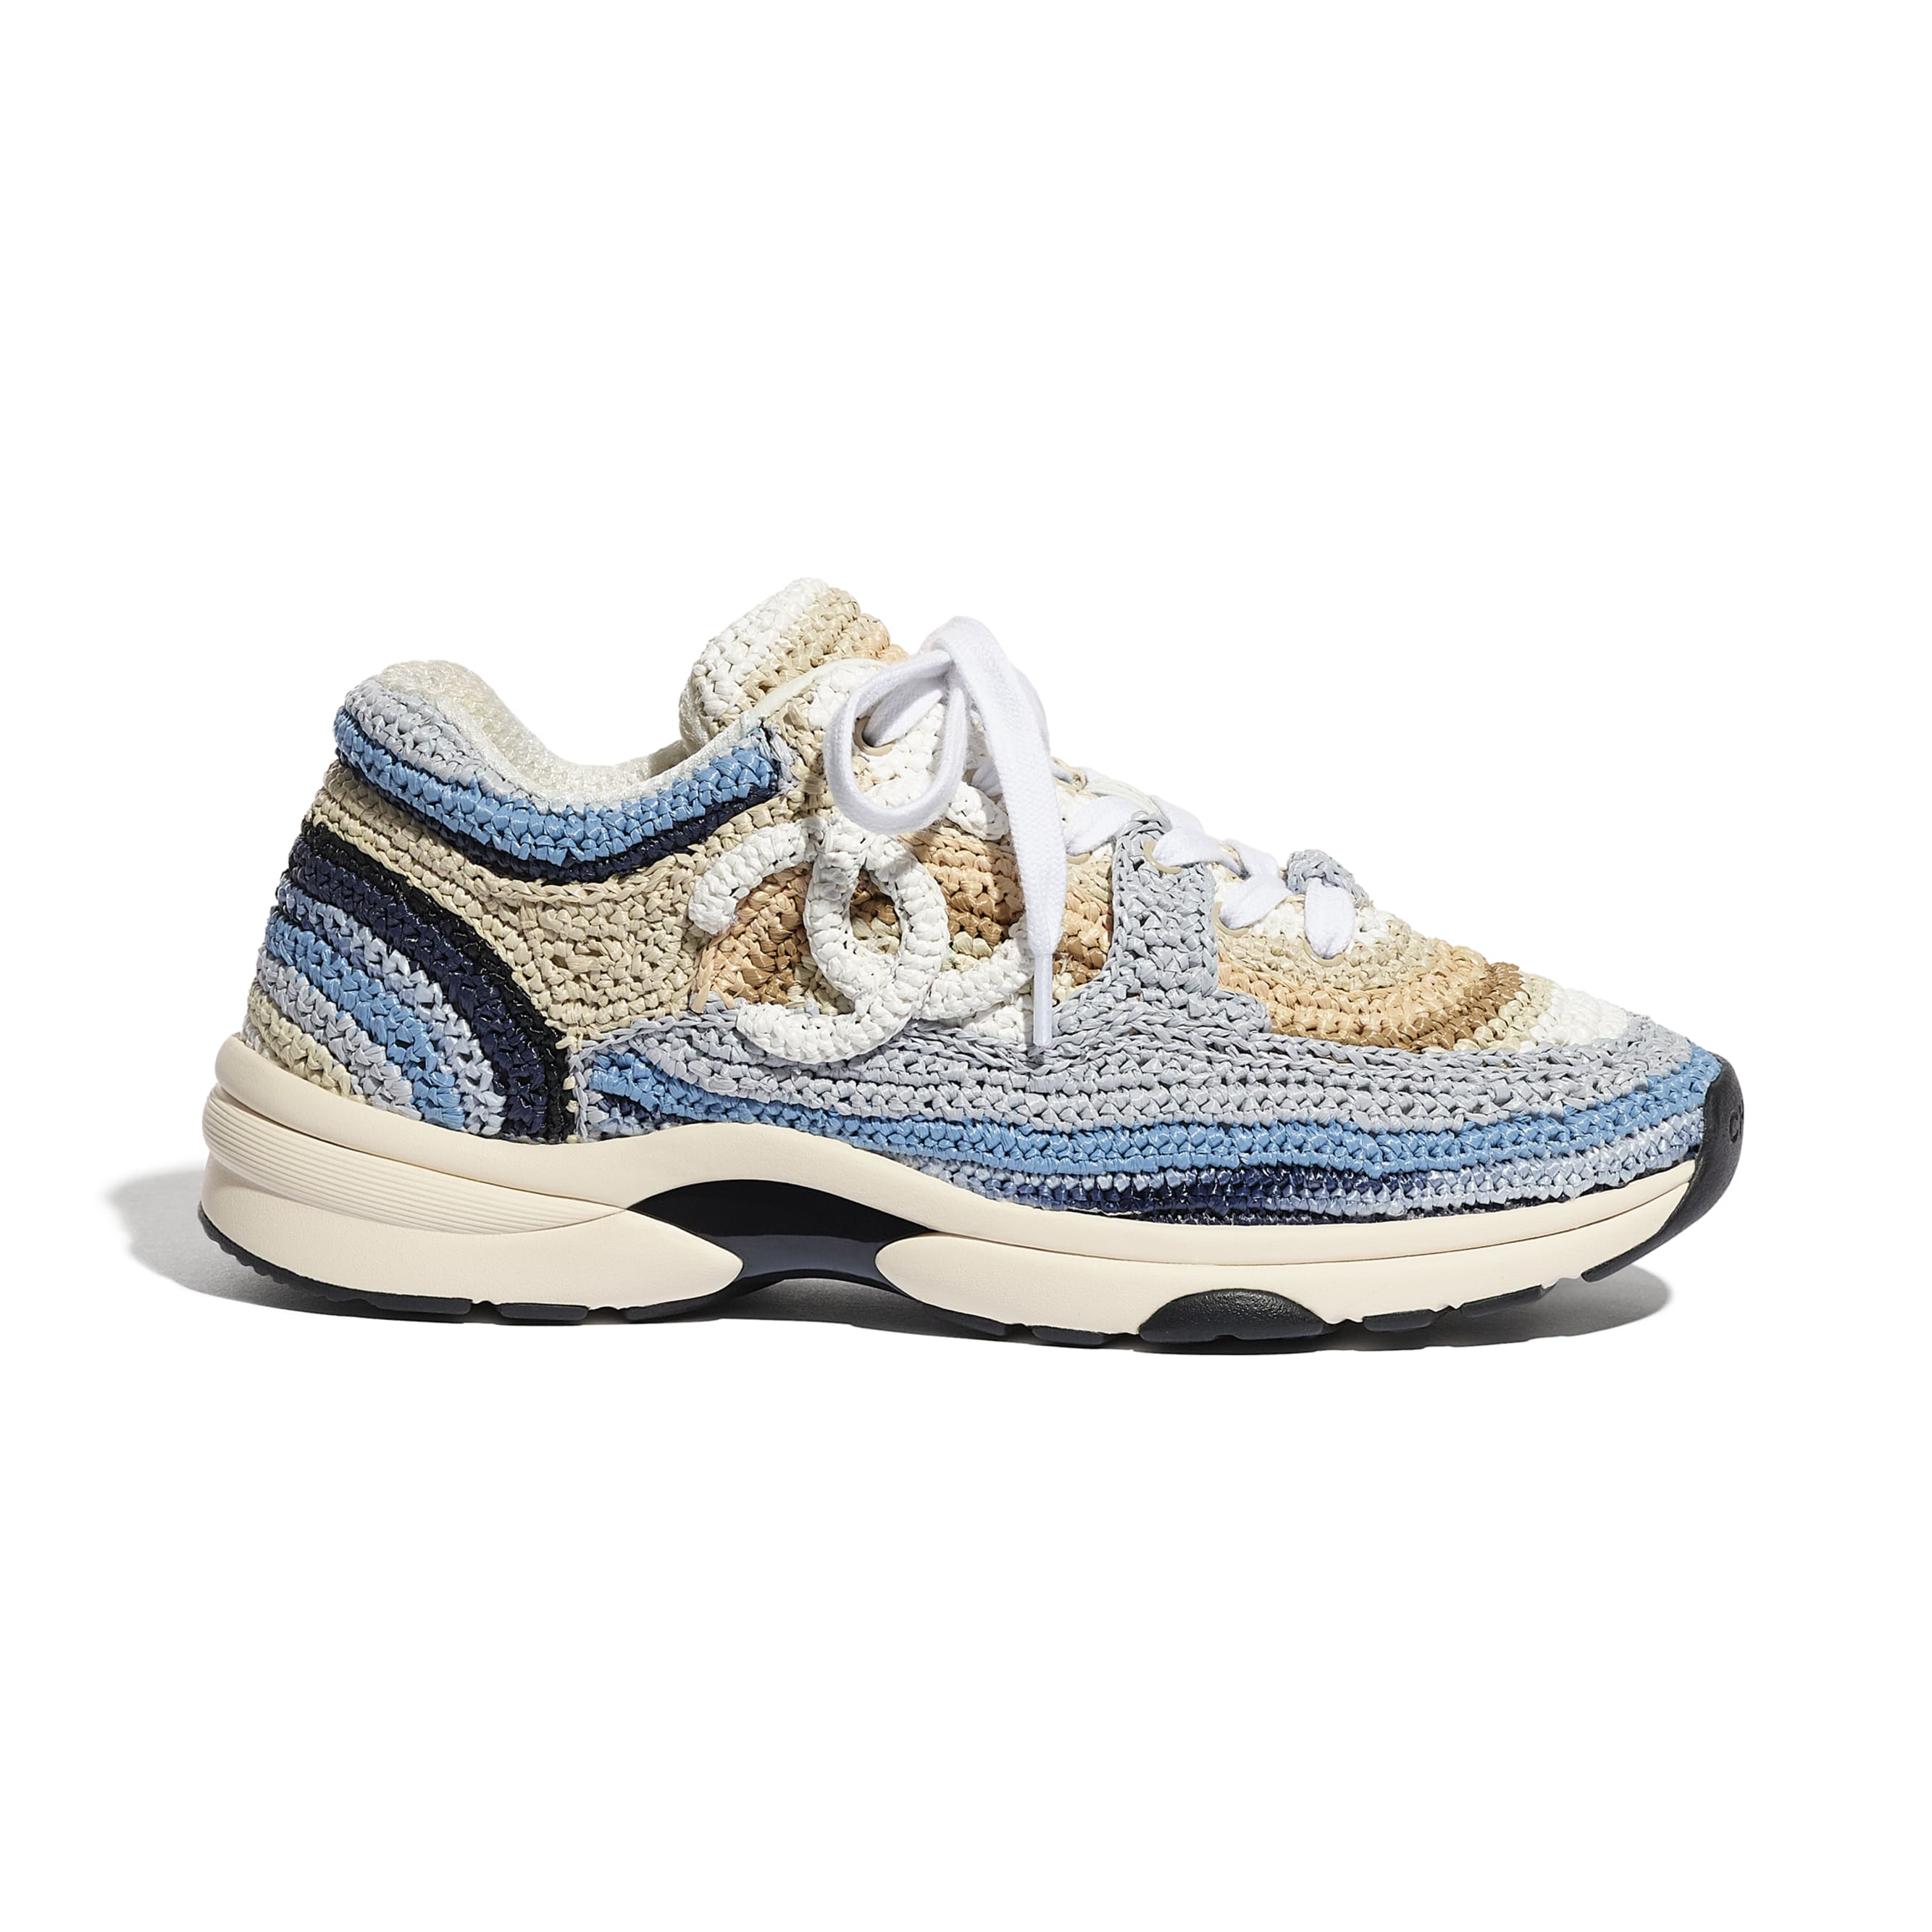 Trainers - Blue & Beige - Braided Raffia - CHANEL - Default view - see standard sized version